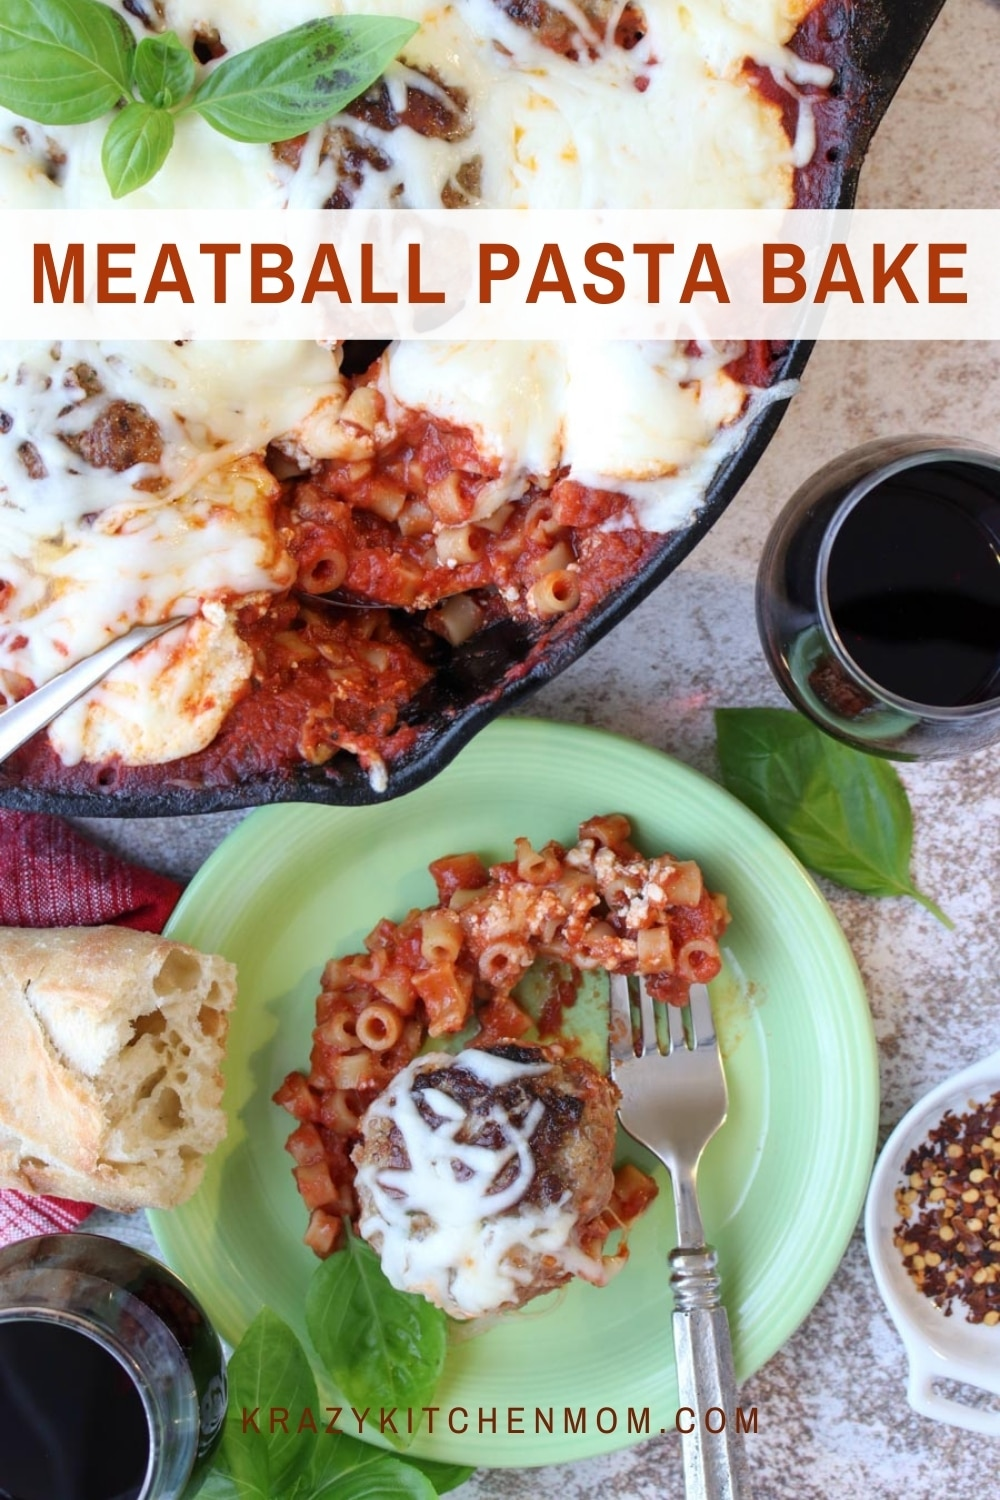 Everyone loves meatballs and pasta! This hearty baked pasta casserole is a fan-favorite for the entire family. via @krazykitchenmom